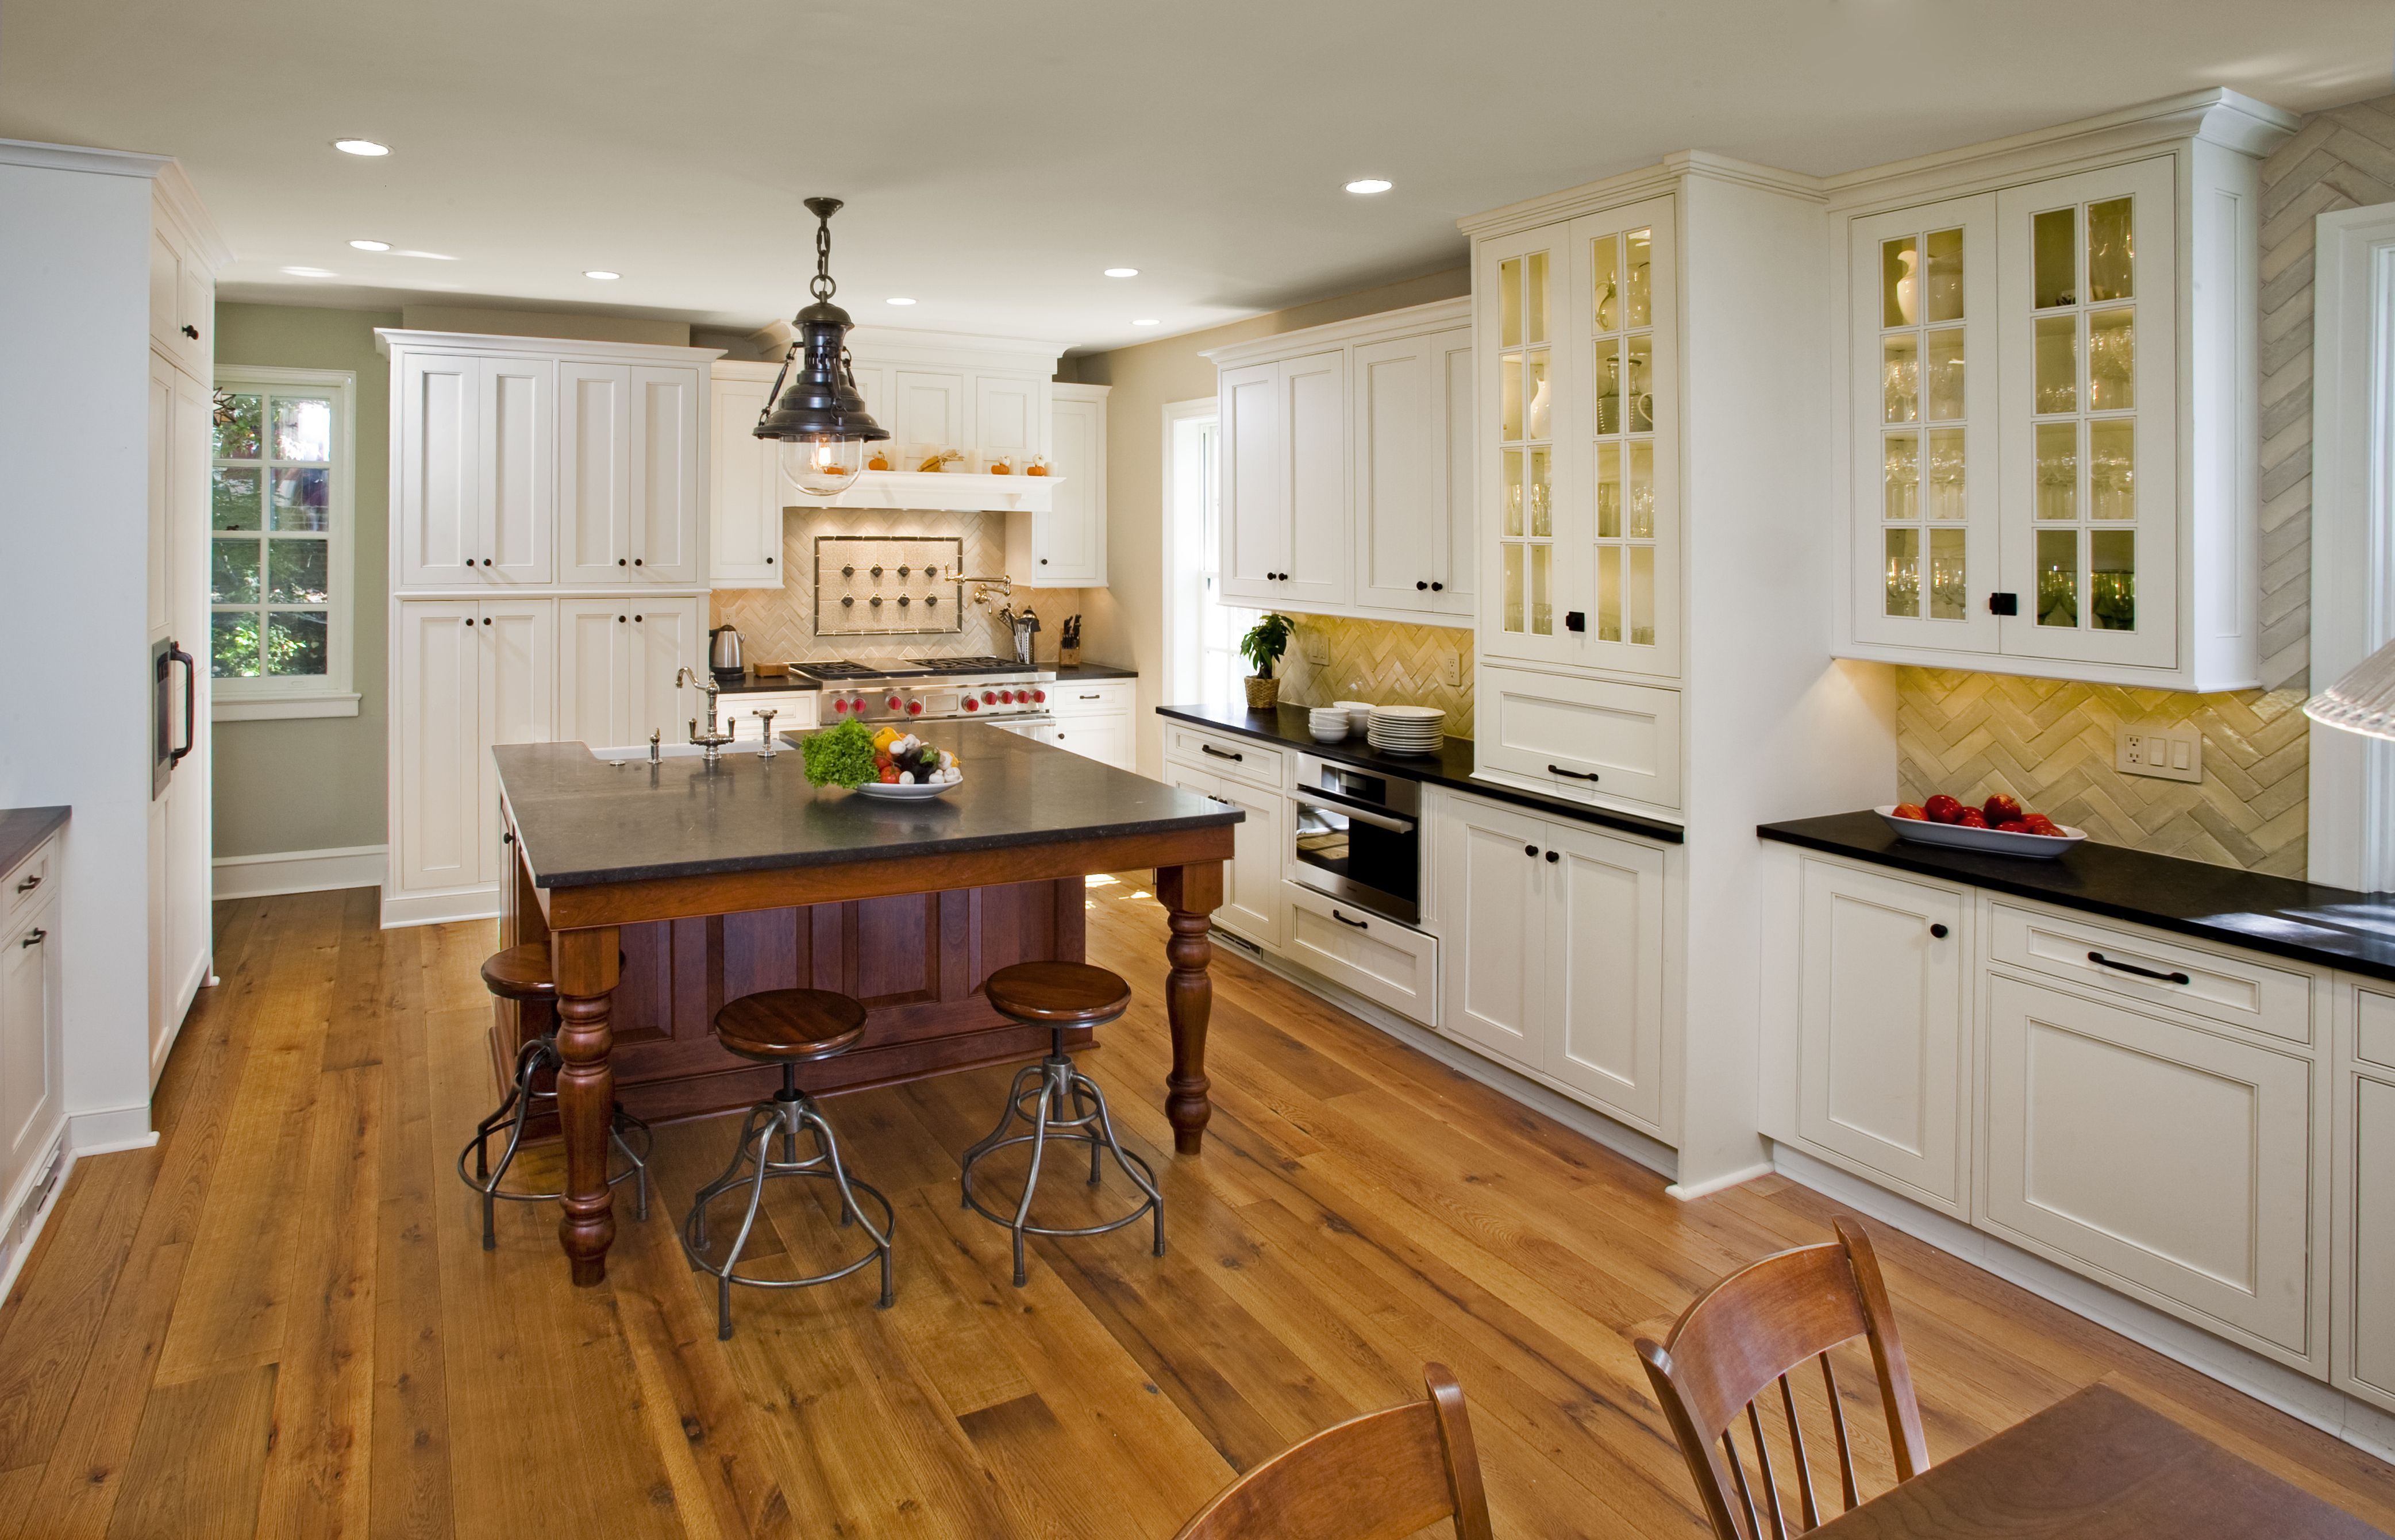 Kitchen cabinets with tigerwood floors - 49 Contemporary High End Natural Wood Kitchen Designs Marble Countertops Wood Flooring And Open Kitchens